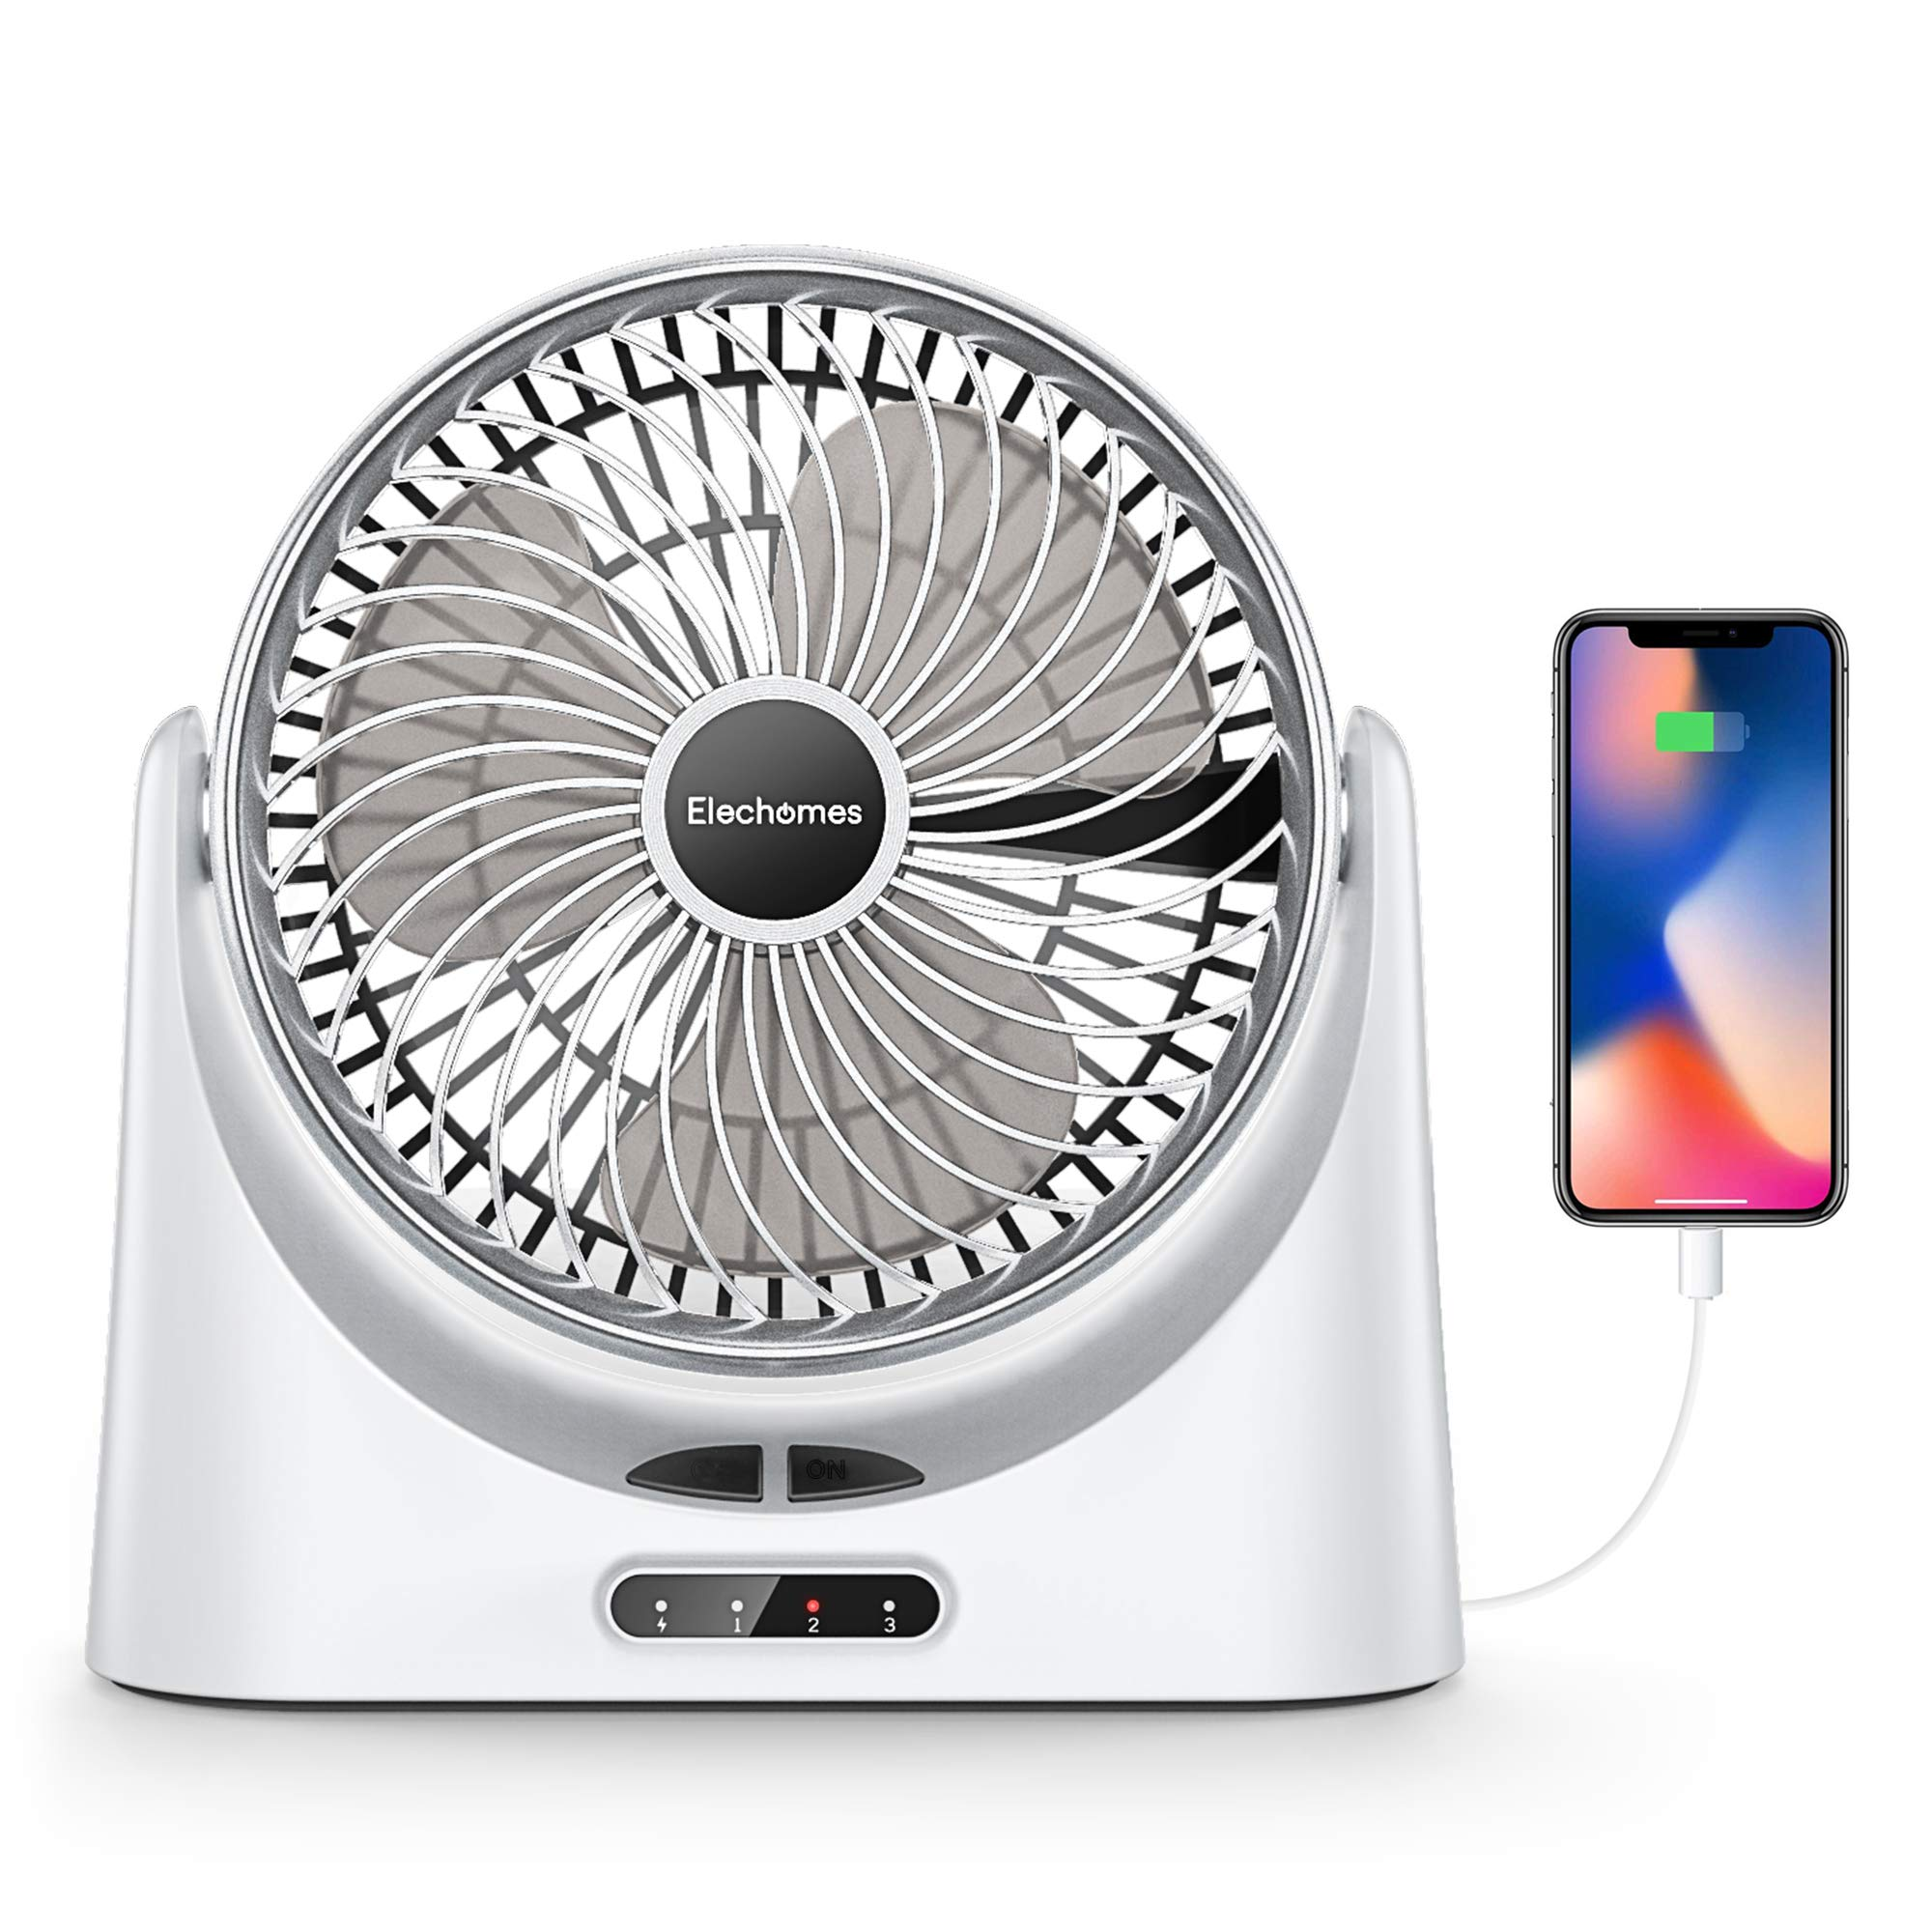 Elechomes USB Desk Fan Small Personal Air Circulator Fan Portable Electric Table Desktop Fan Rechargeable Travel Fans for Camping Office Room Outdoor, with Power Bank Function and LED Light, 10'' White